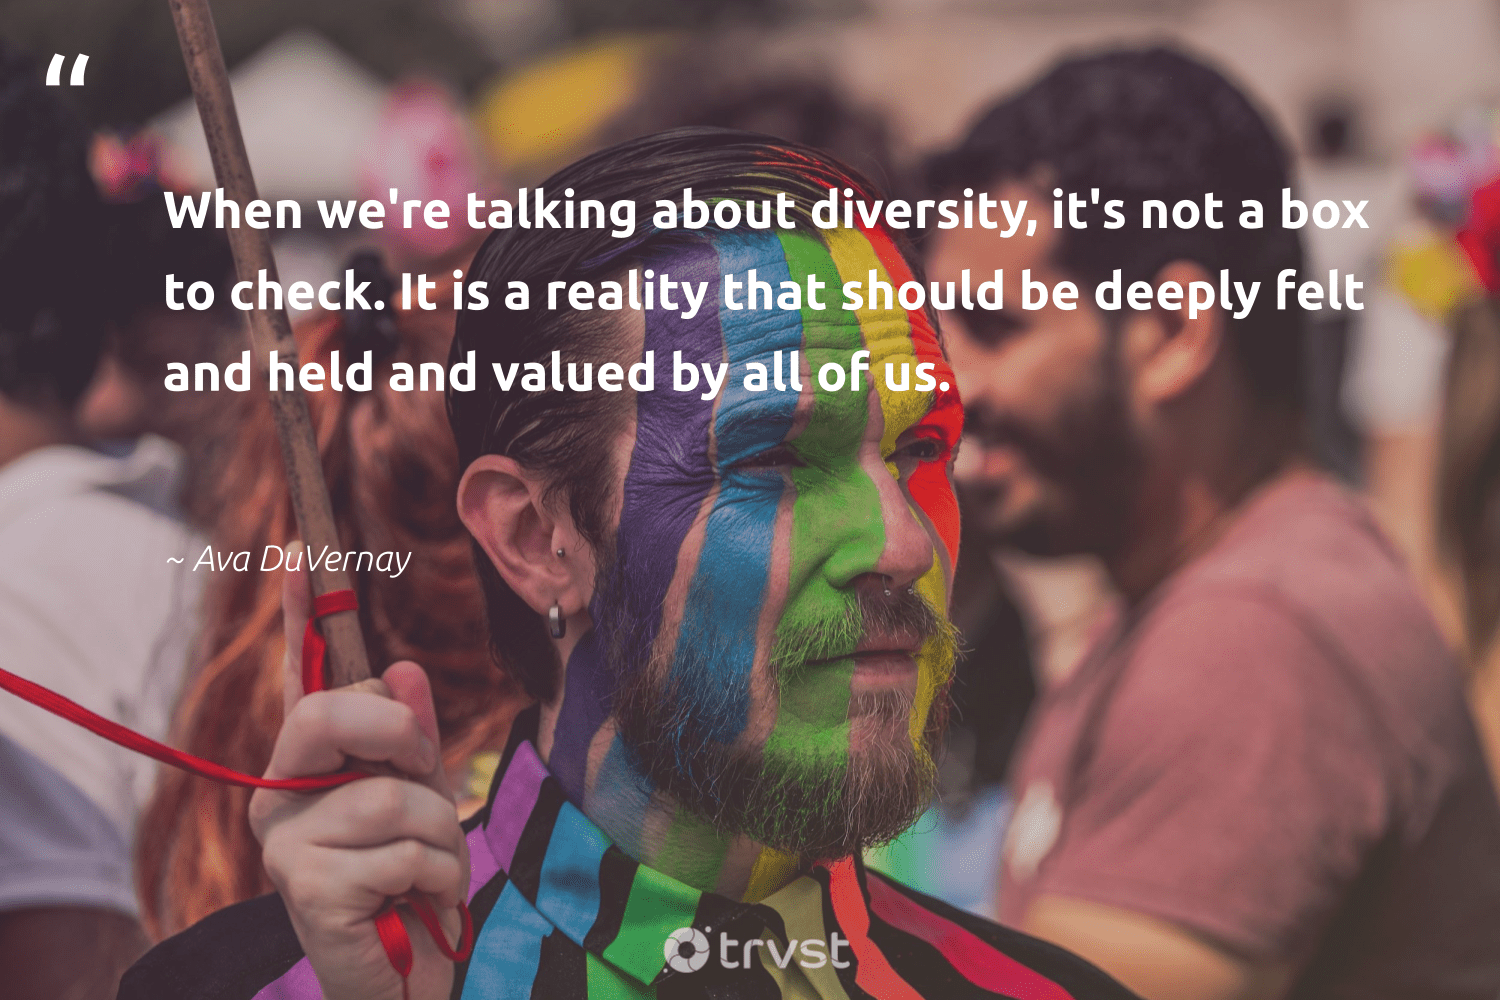 """When we're talking about diversity, it's not a box to check. It is a reality that should be deeply felt and held and valued by all of us.""  - Ava DuVernay #trvst #quotes #diversity #inclusion #representationmatters #bethechange #giveback #ecoconscious #discrimination #makeadifference #socialgood #dotherightthing"